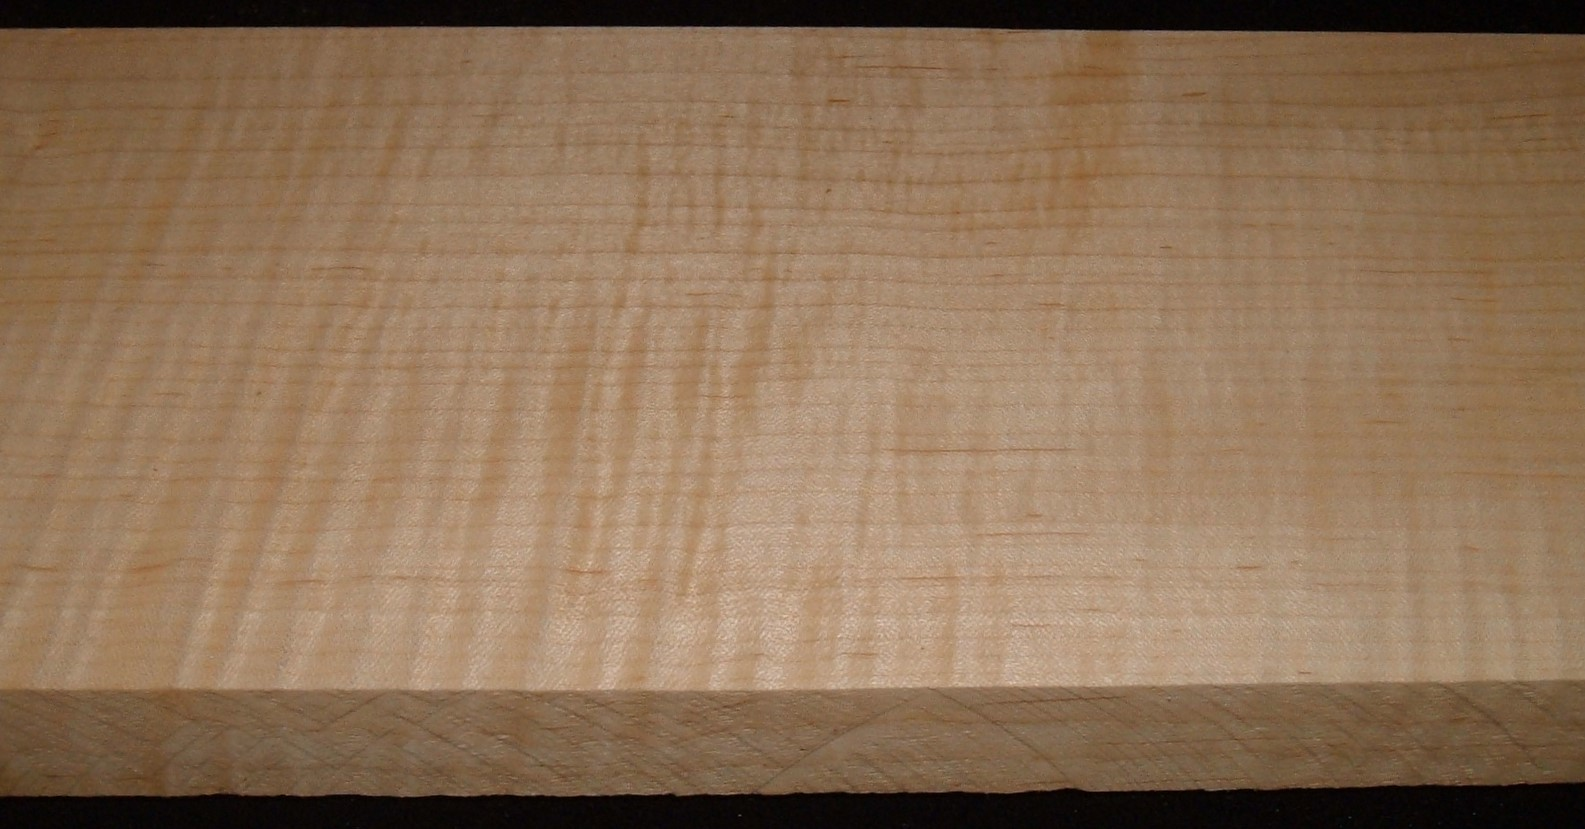 QS2104-52JK, 1-3/8x5-7/8x46, Quartersawn Curly Maple